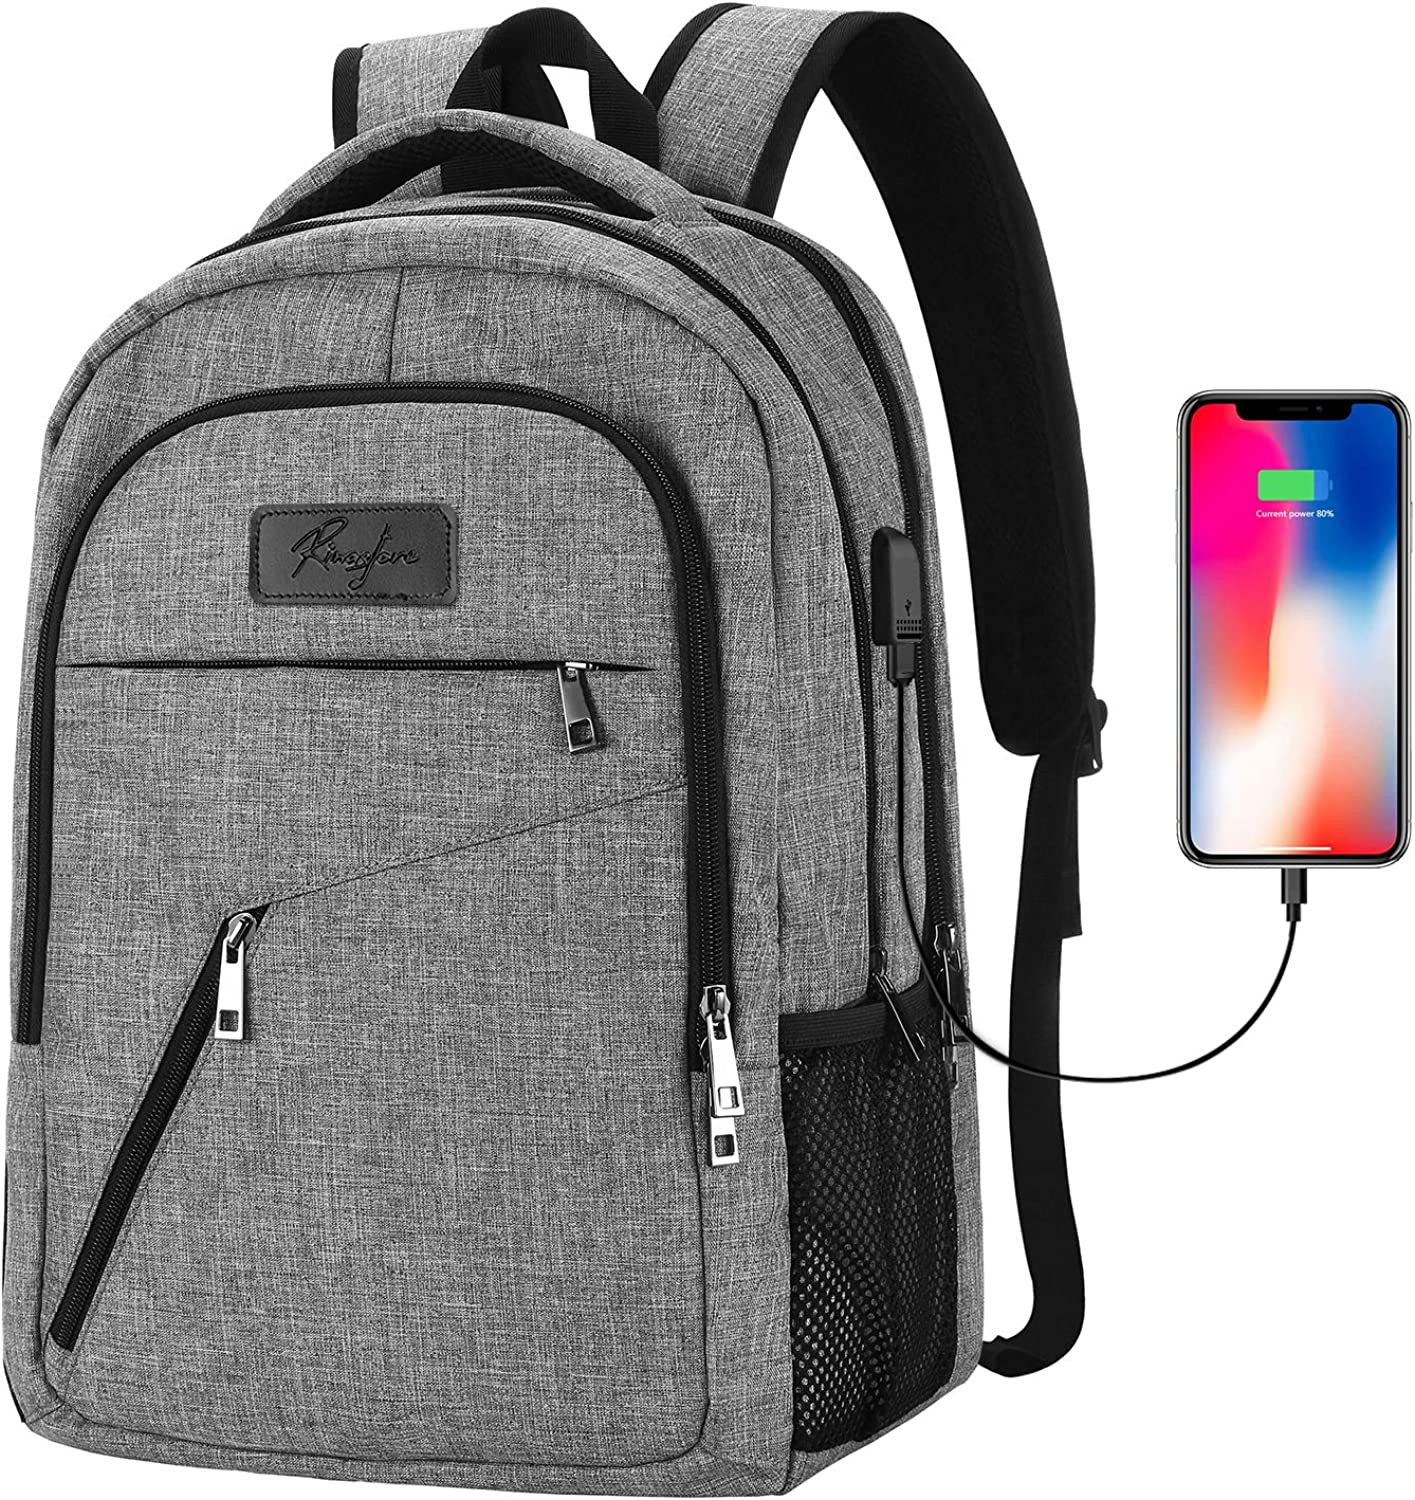 Travel Laptop Backpack with USB Charging Port for Men Women